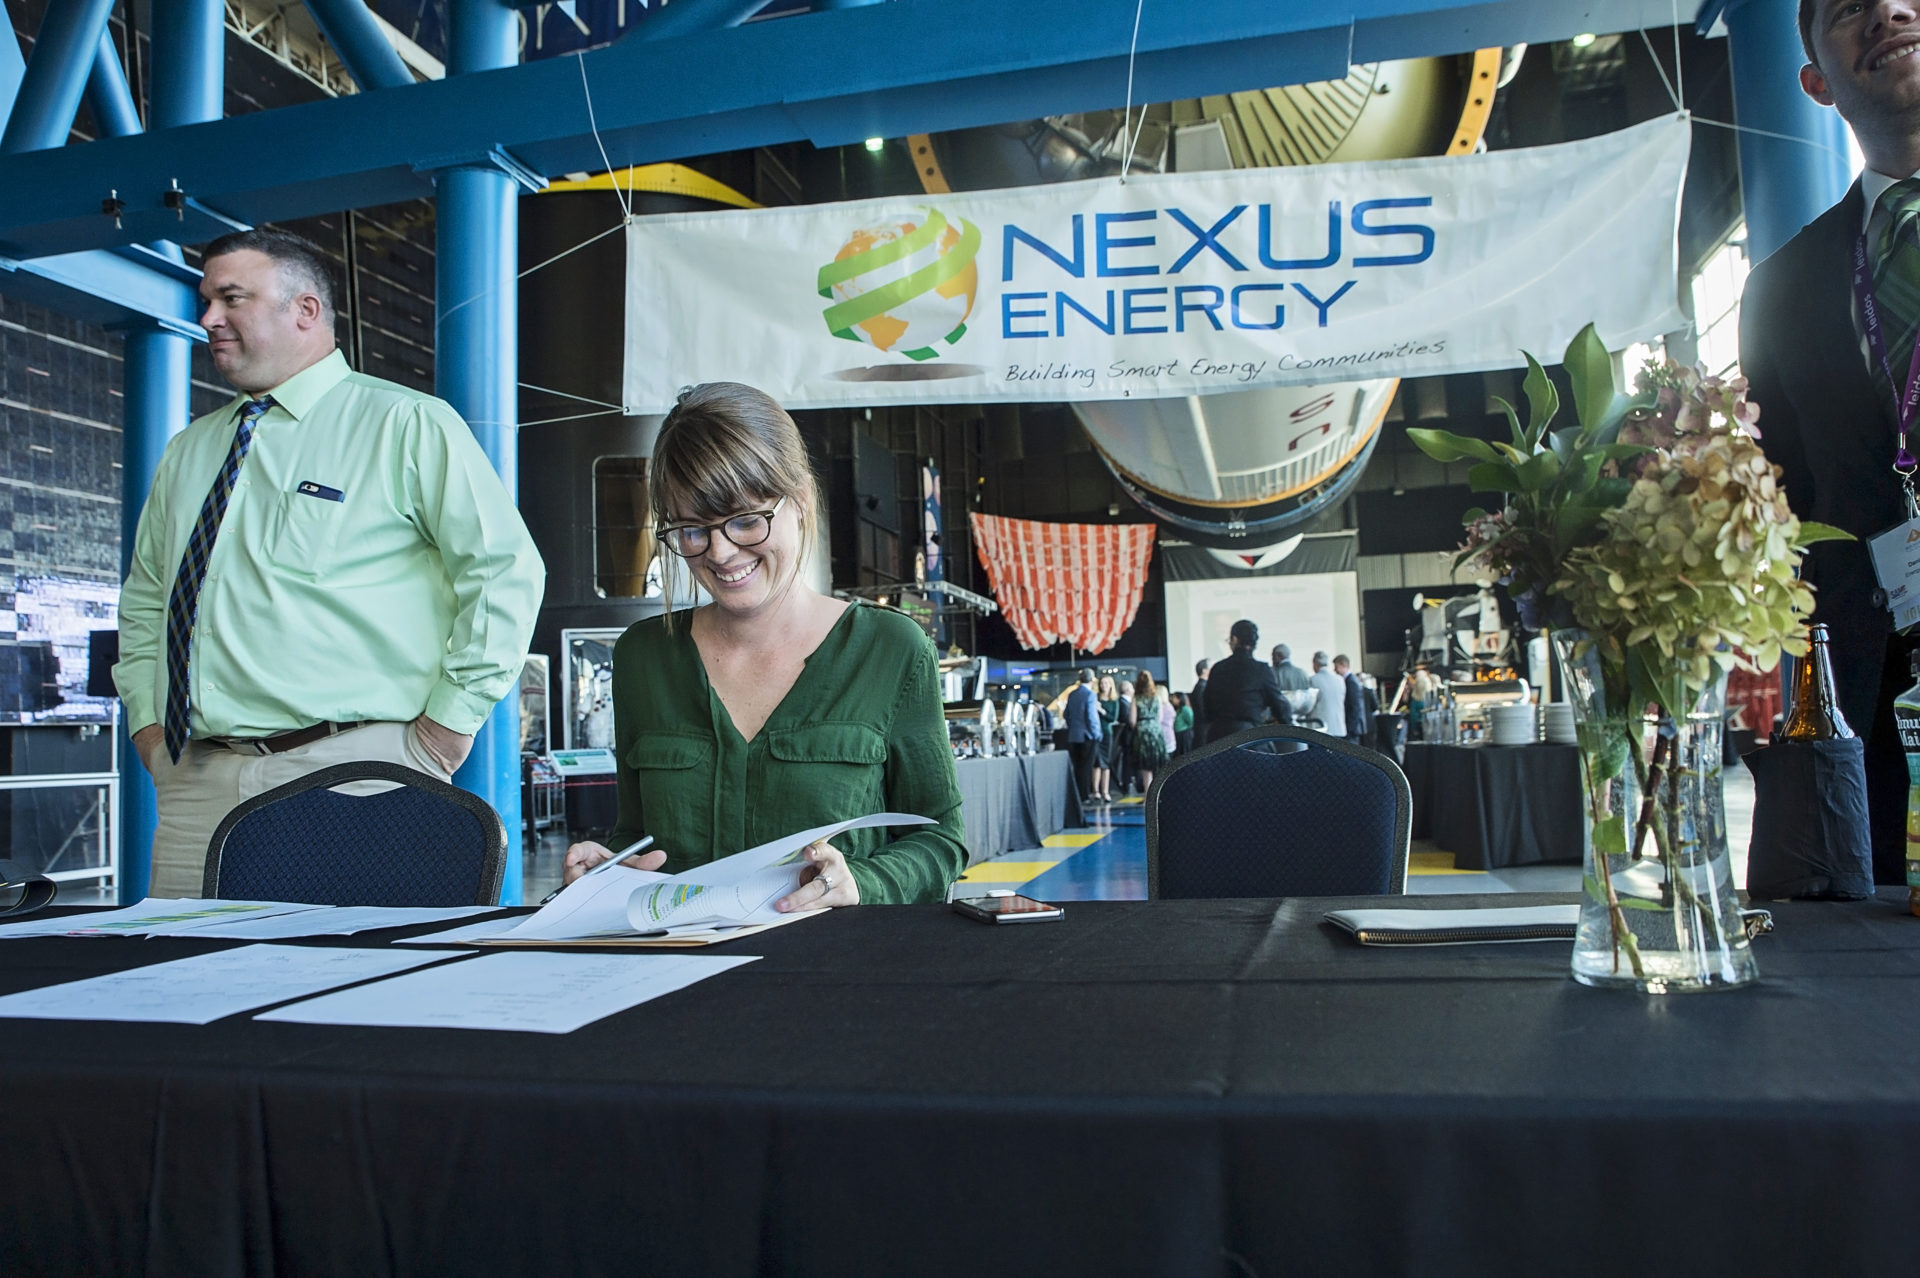 At the registration table with Joshlyne VIllano, Office Manager at Nexus Energy Center